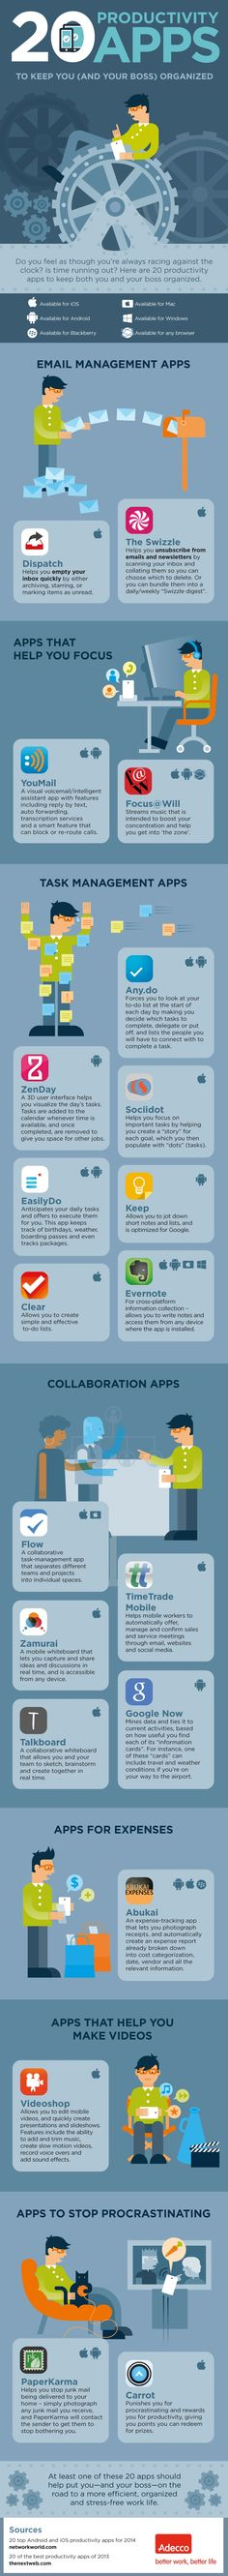 MICROSOFT OFFICE 2013 Entrepreneur\u0027s Business Pinterest